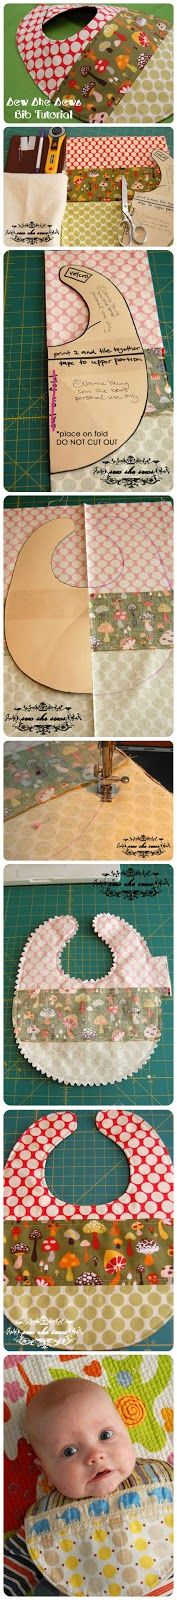 joybobo: Quilted Patchwork Bib Pattern And Tutorial